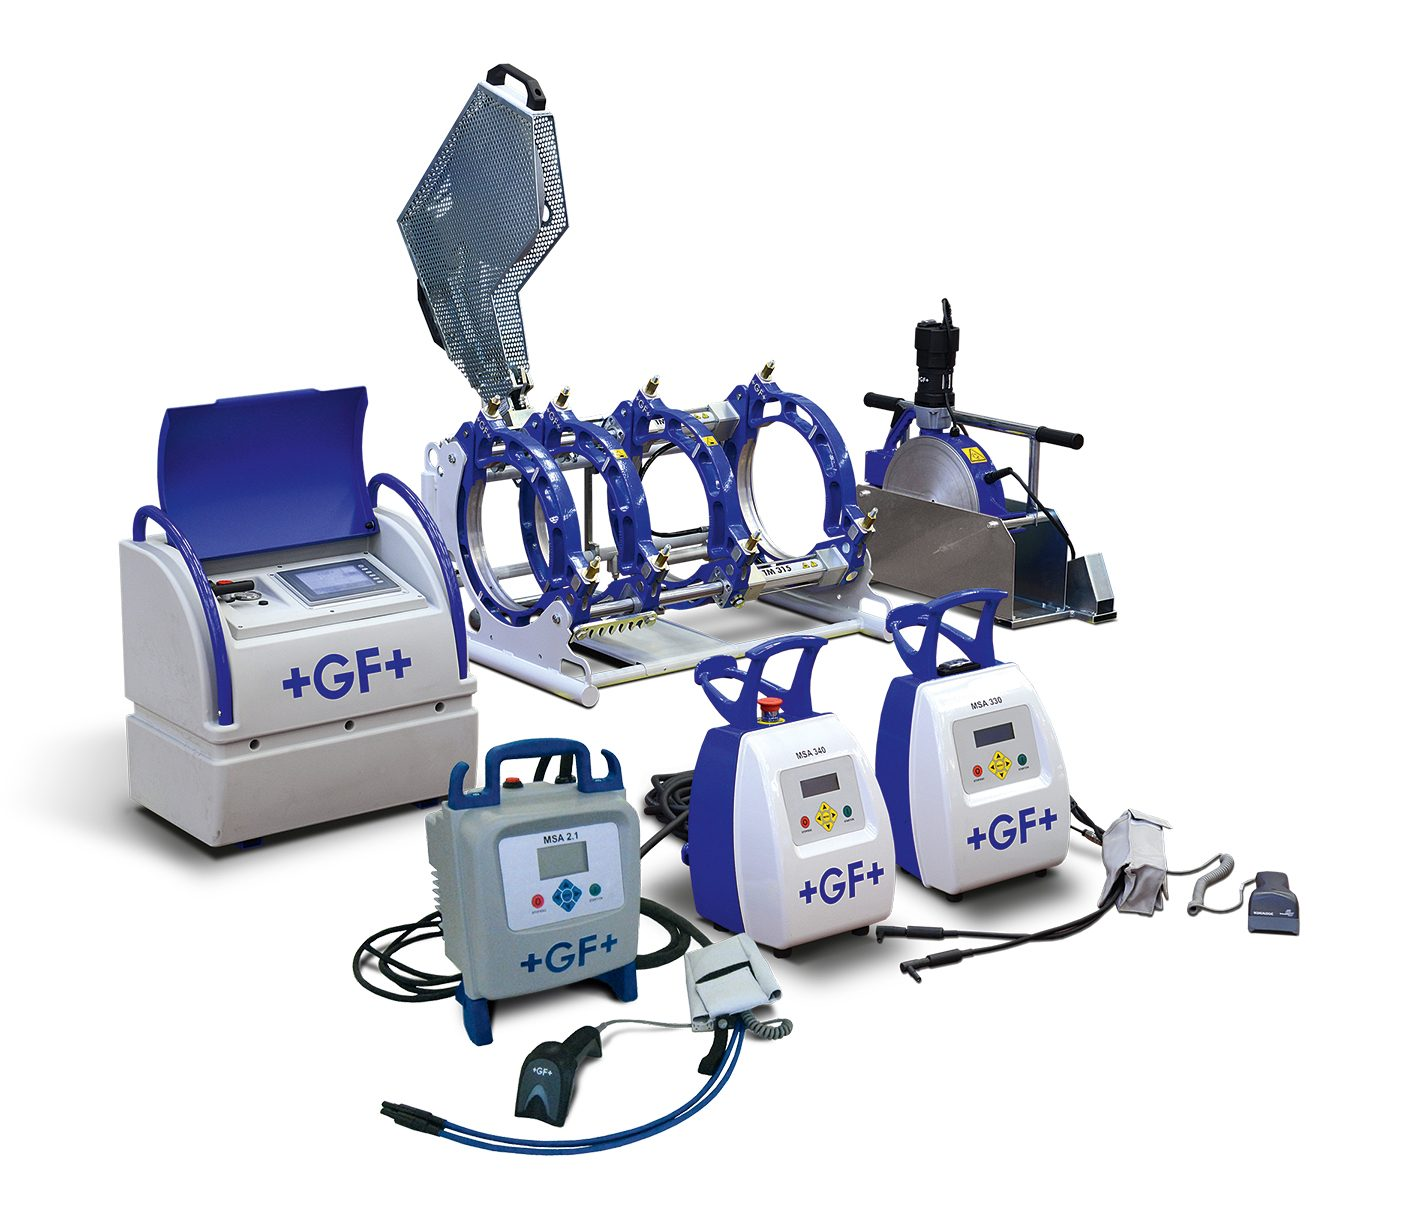 PE Tools Welding Equipment